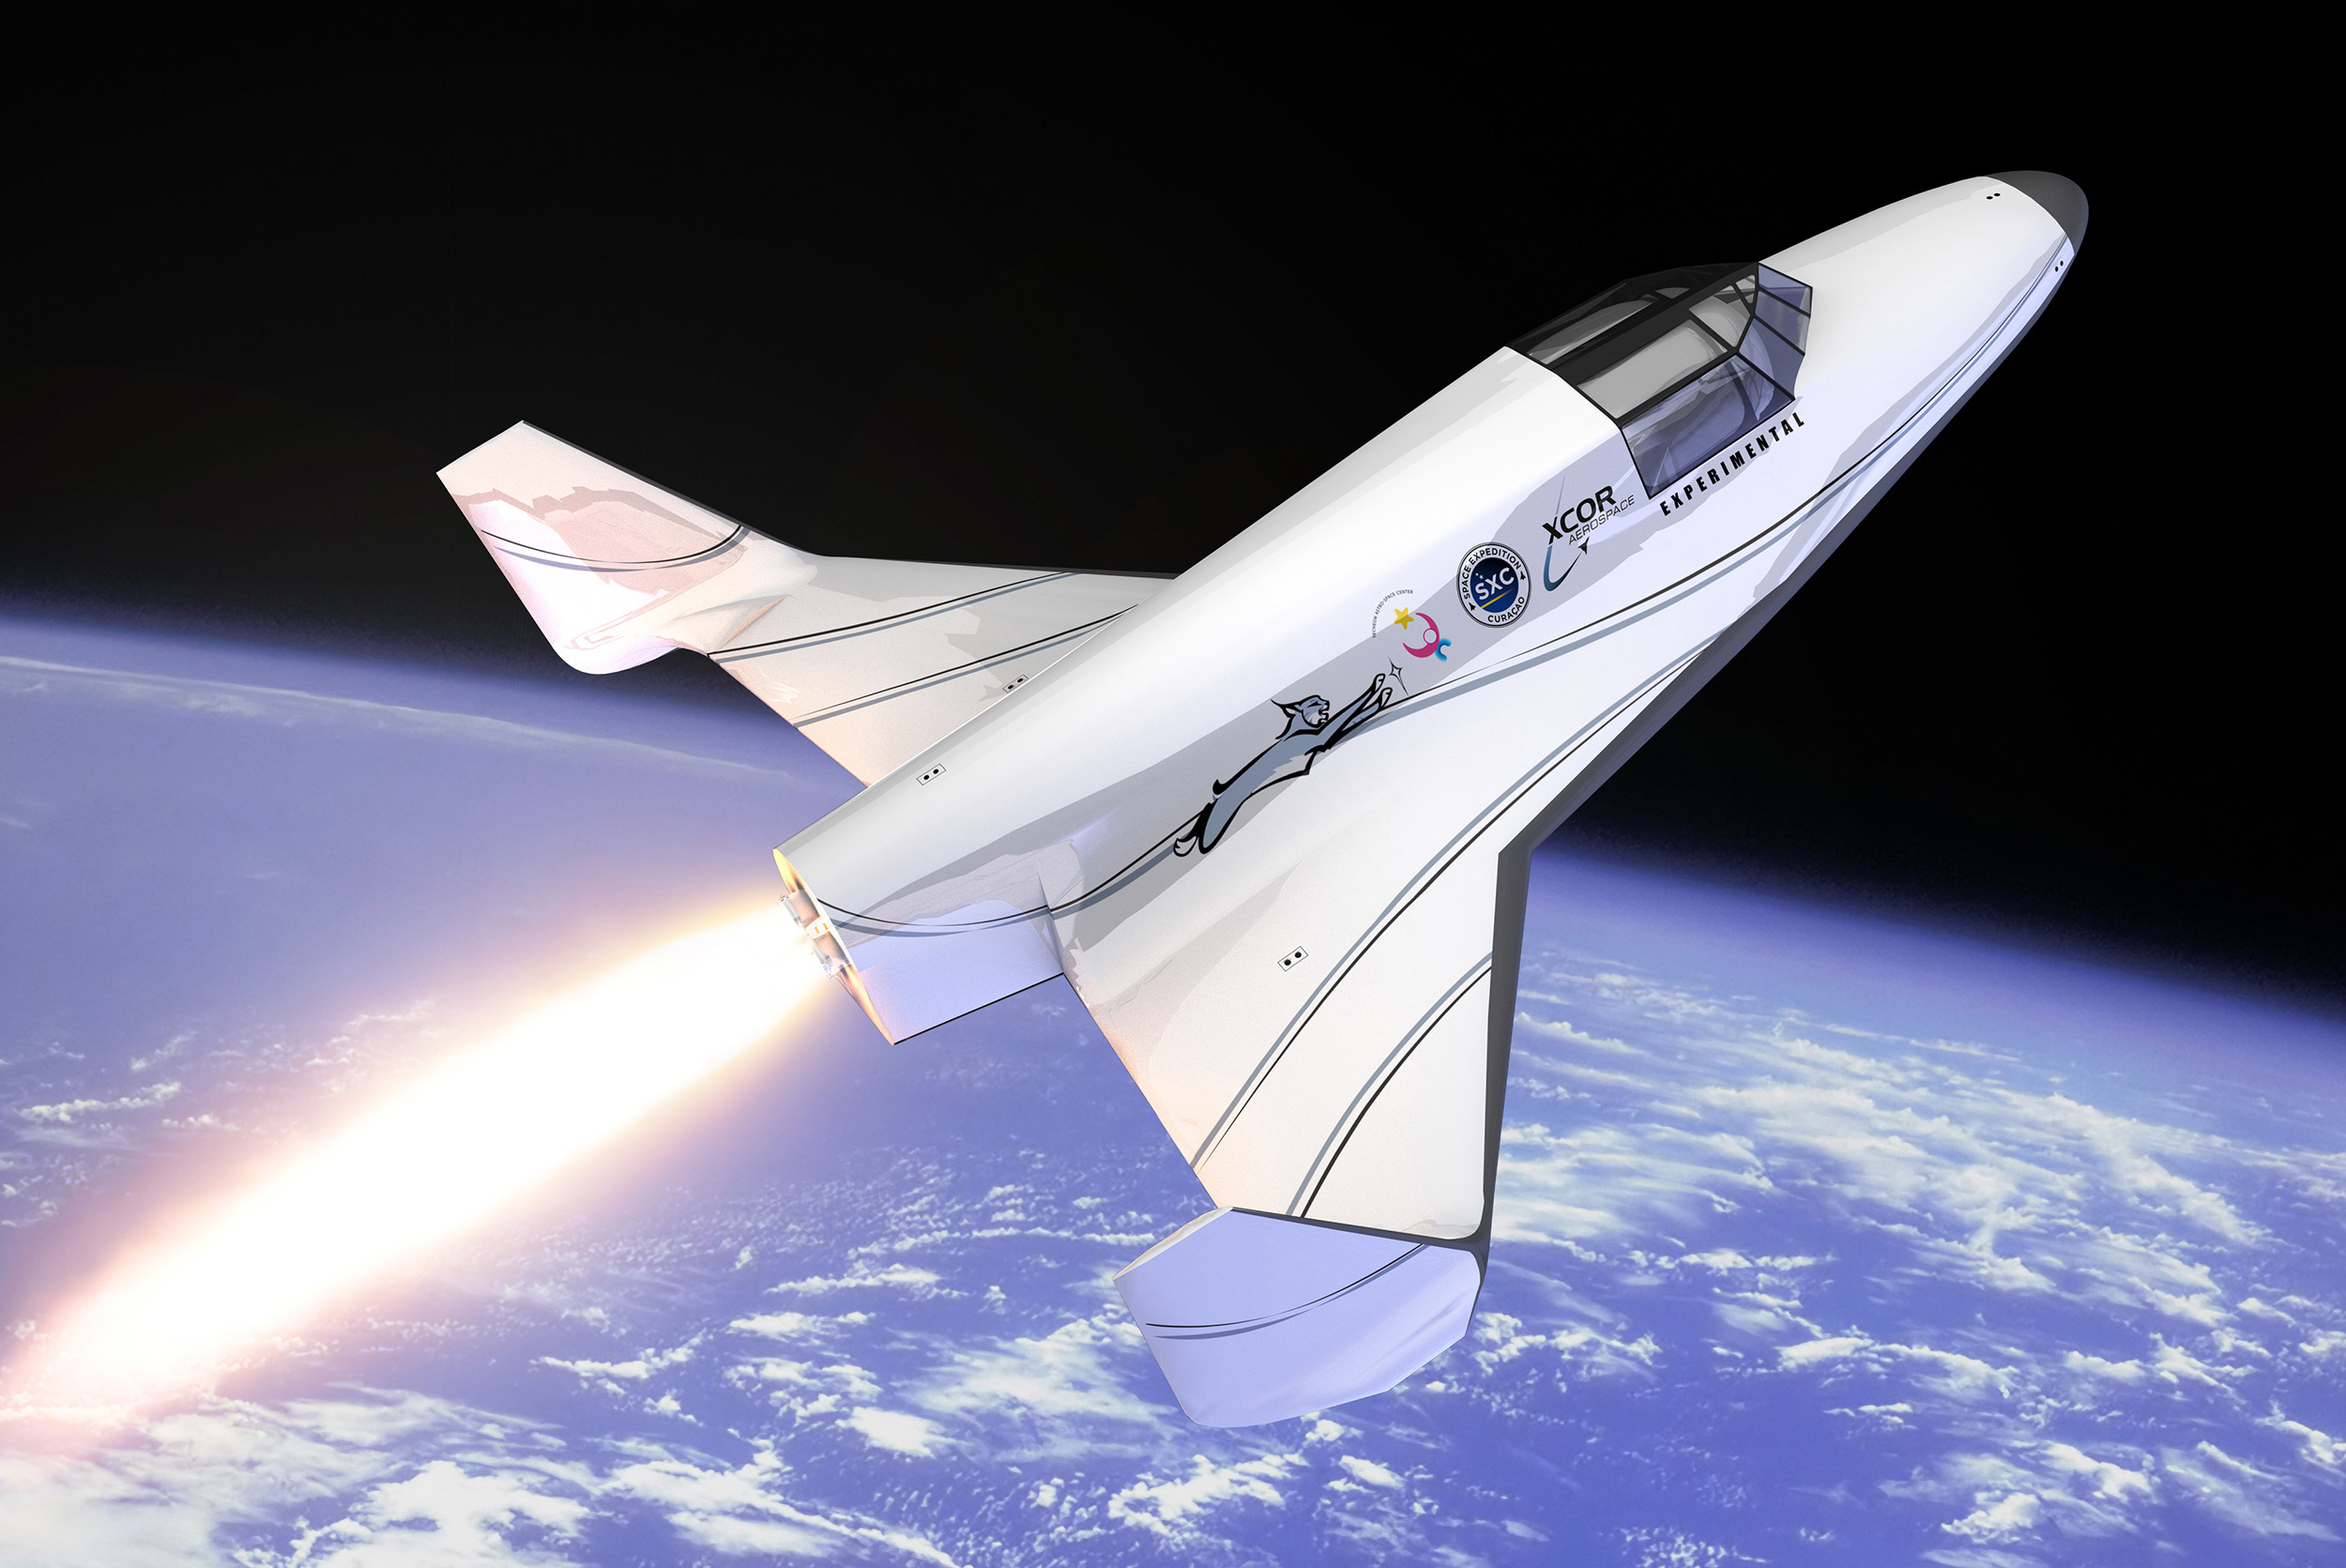 Lynx spacecraft to give big boost to space tourism ...